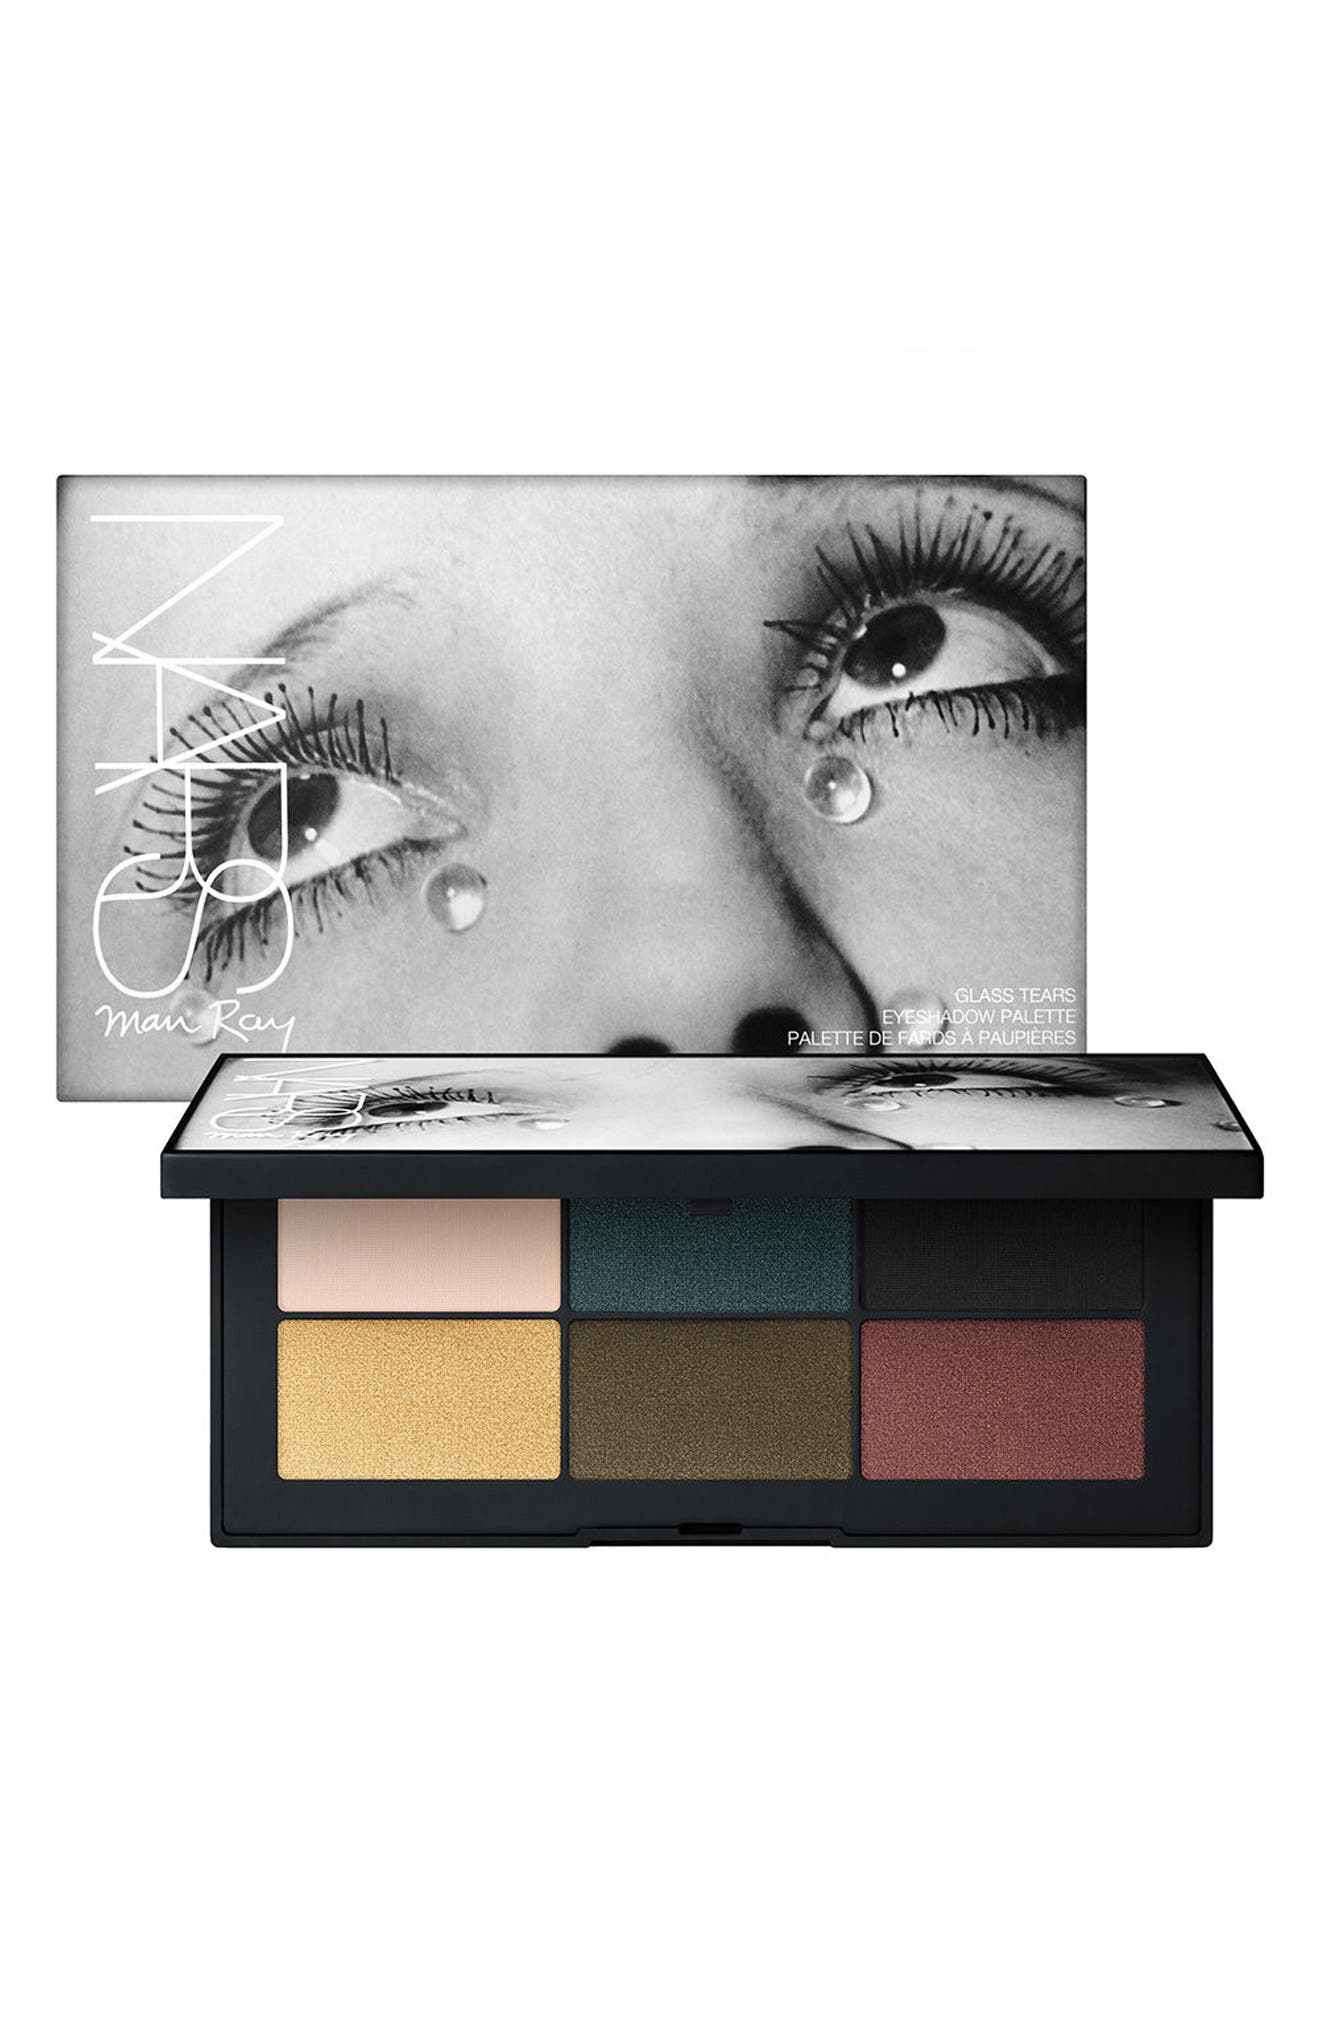 Man Ray Glass Tears Eyeshadow Palette,                         Main,                         color, No Color